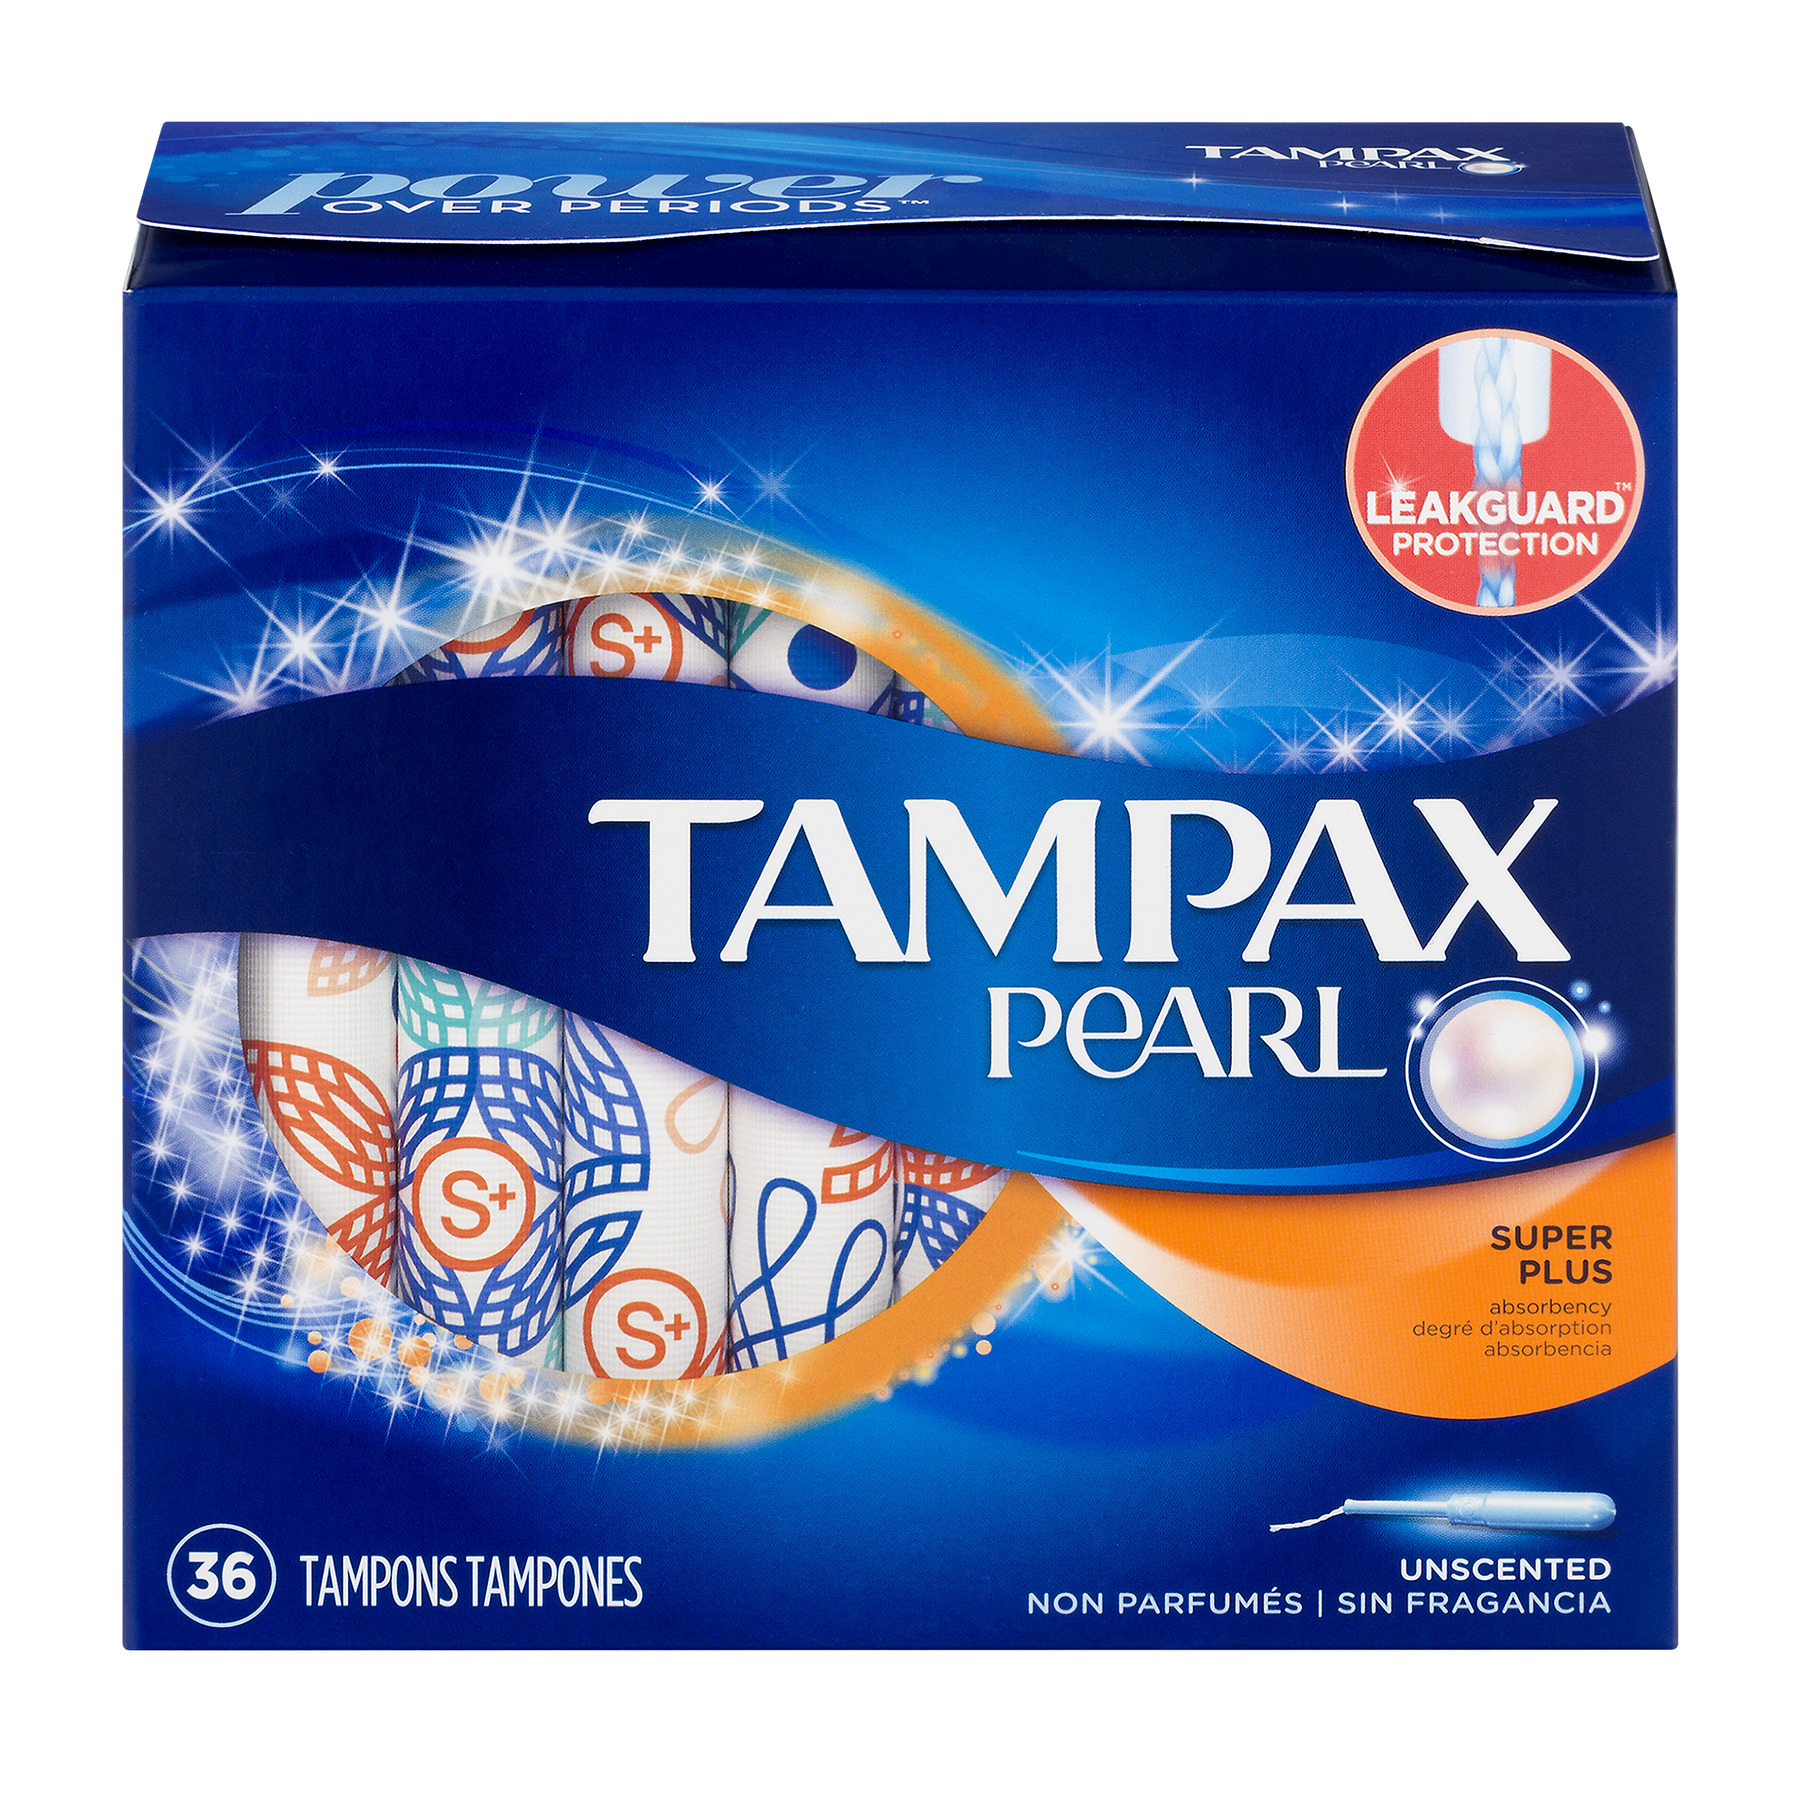 Tampax Pearl Super Plus Plastic Tampons, Unscented, 36 Count